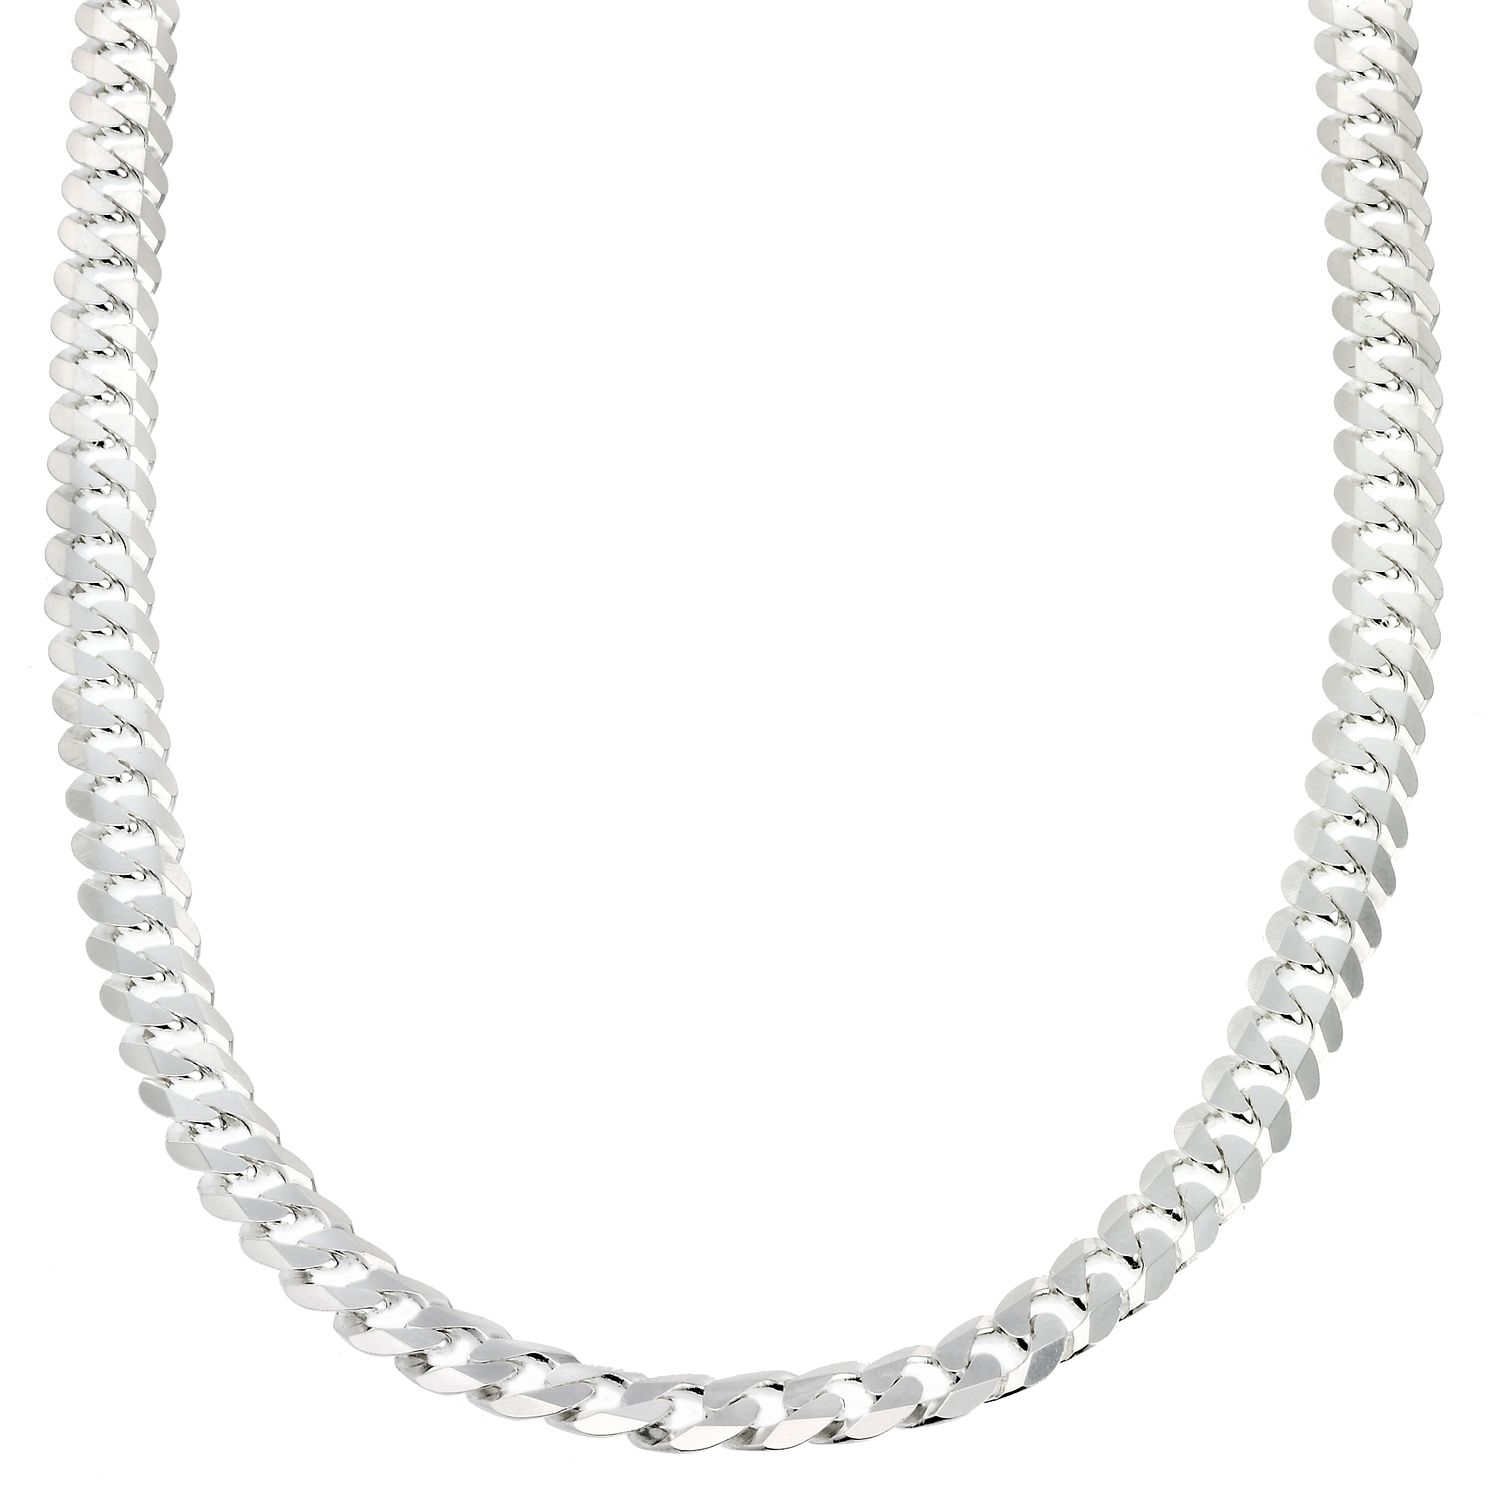 Sterling Silver Flat Curb Chain 20